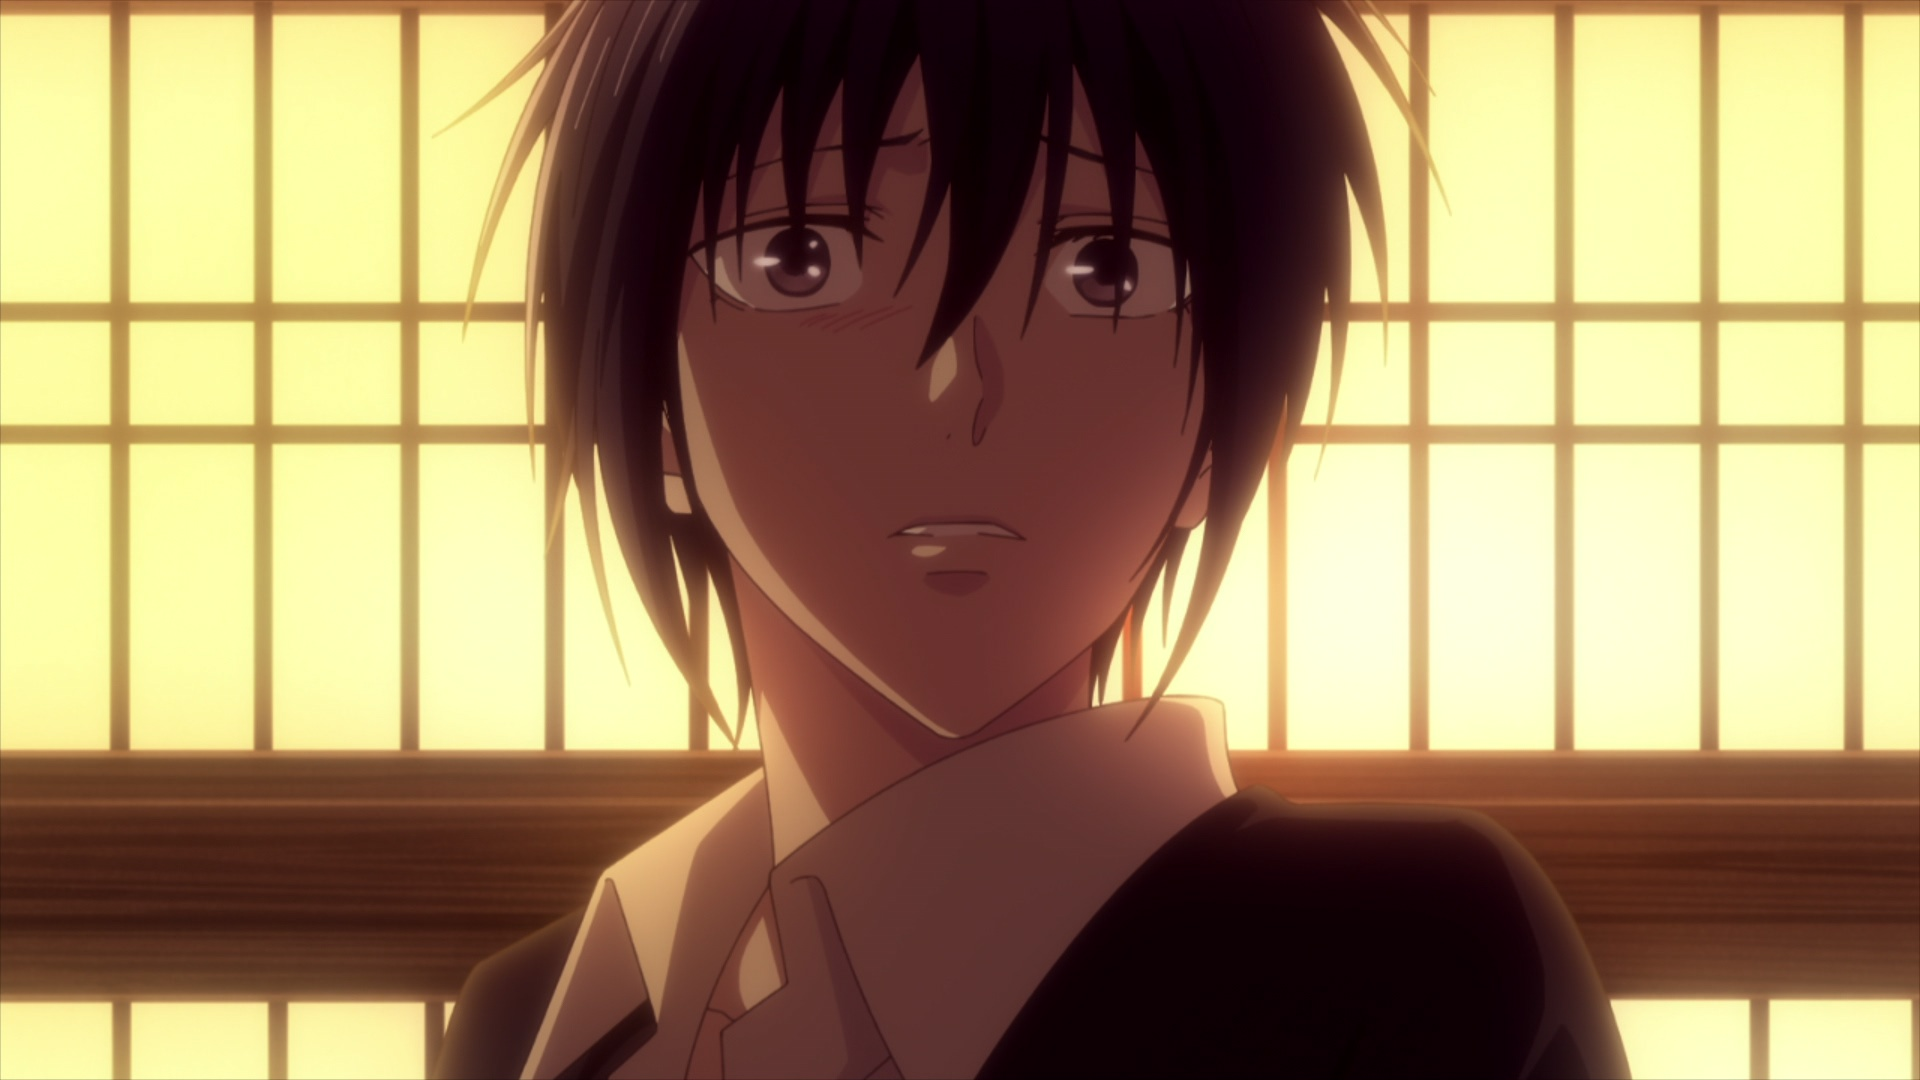 Fruits Basket Season 3 Episode 13 Release Date and Time